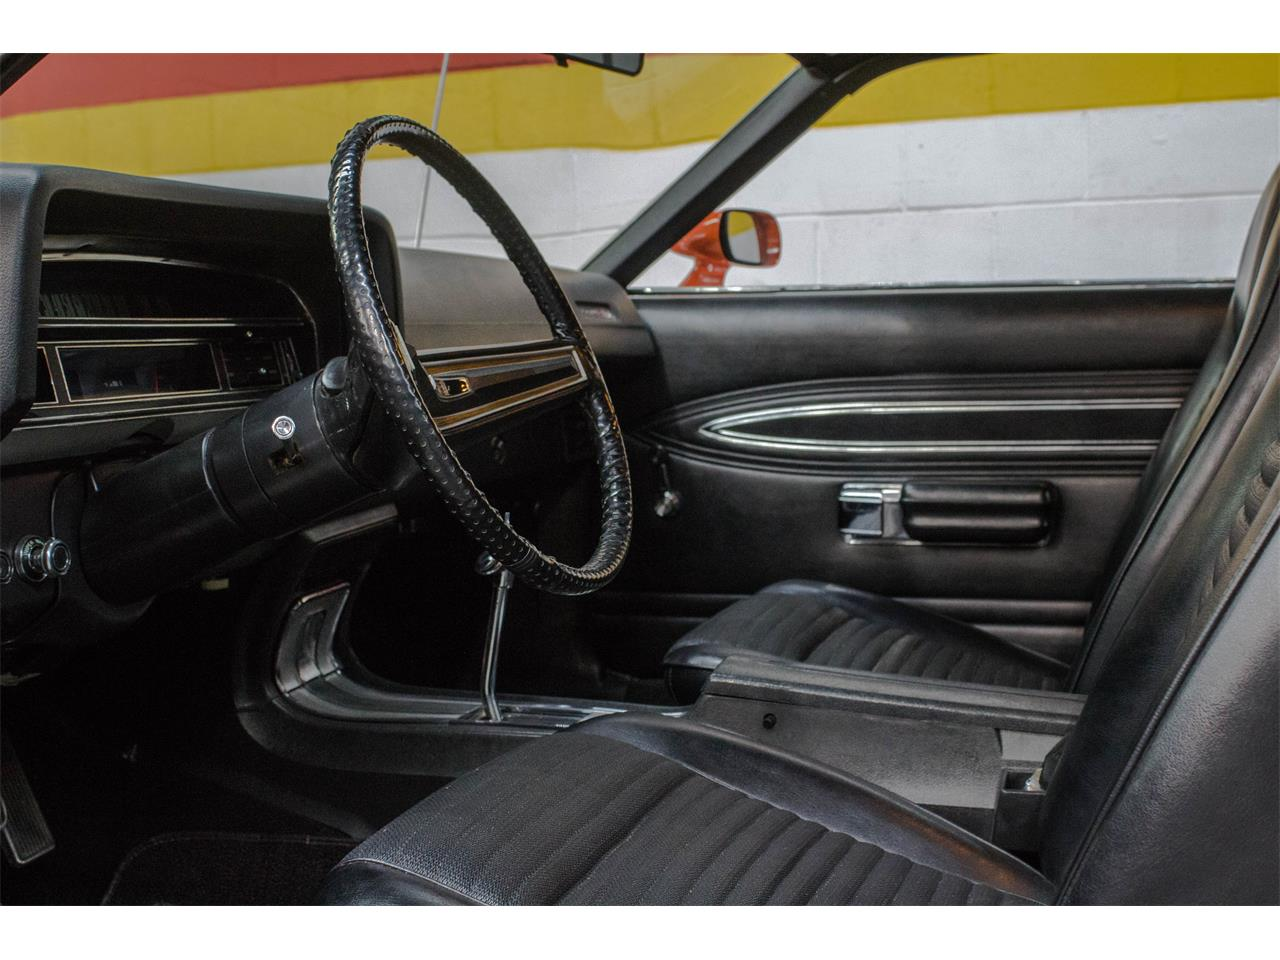 Large Picture of Classic '70 Ford Torino - $59,995.00 - G9ZX